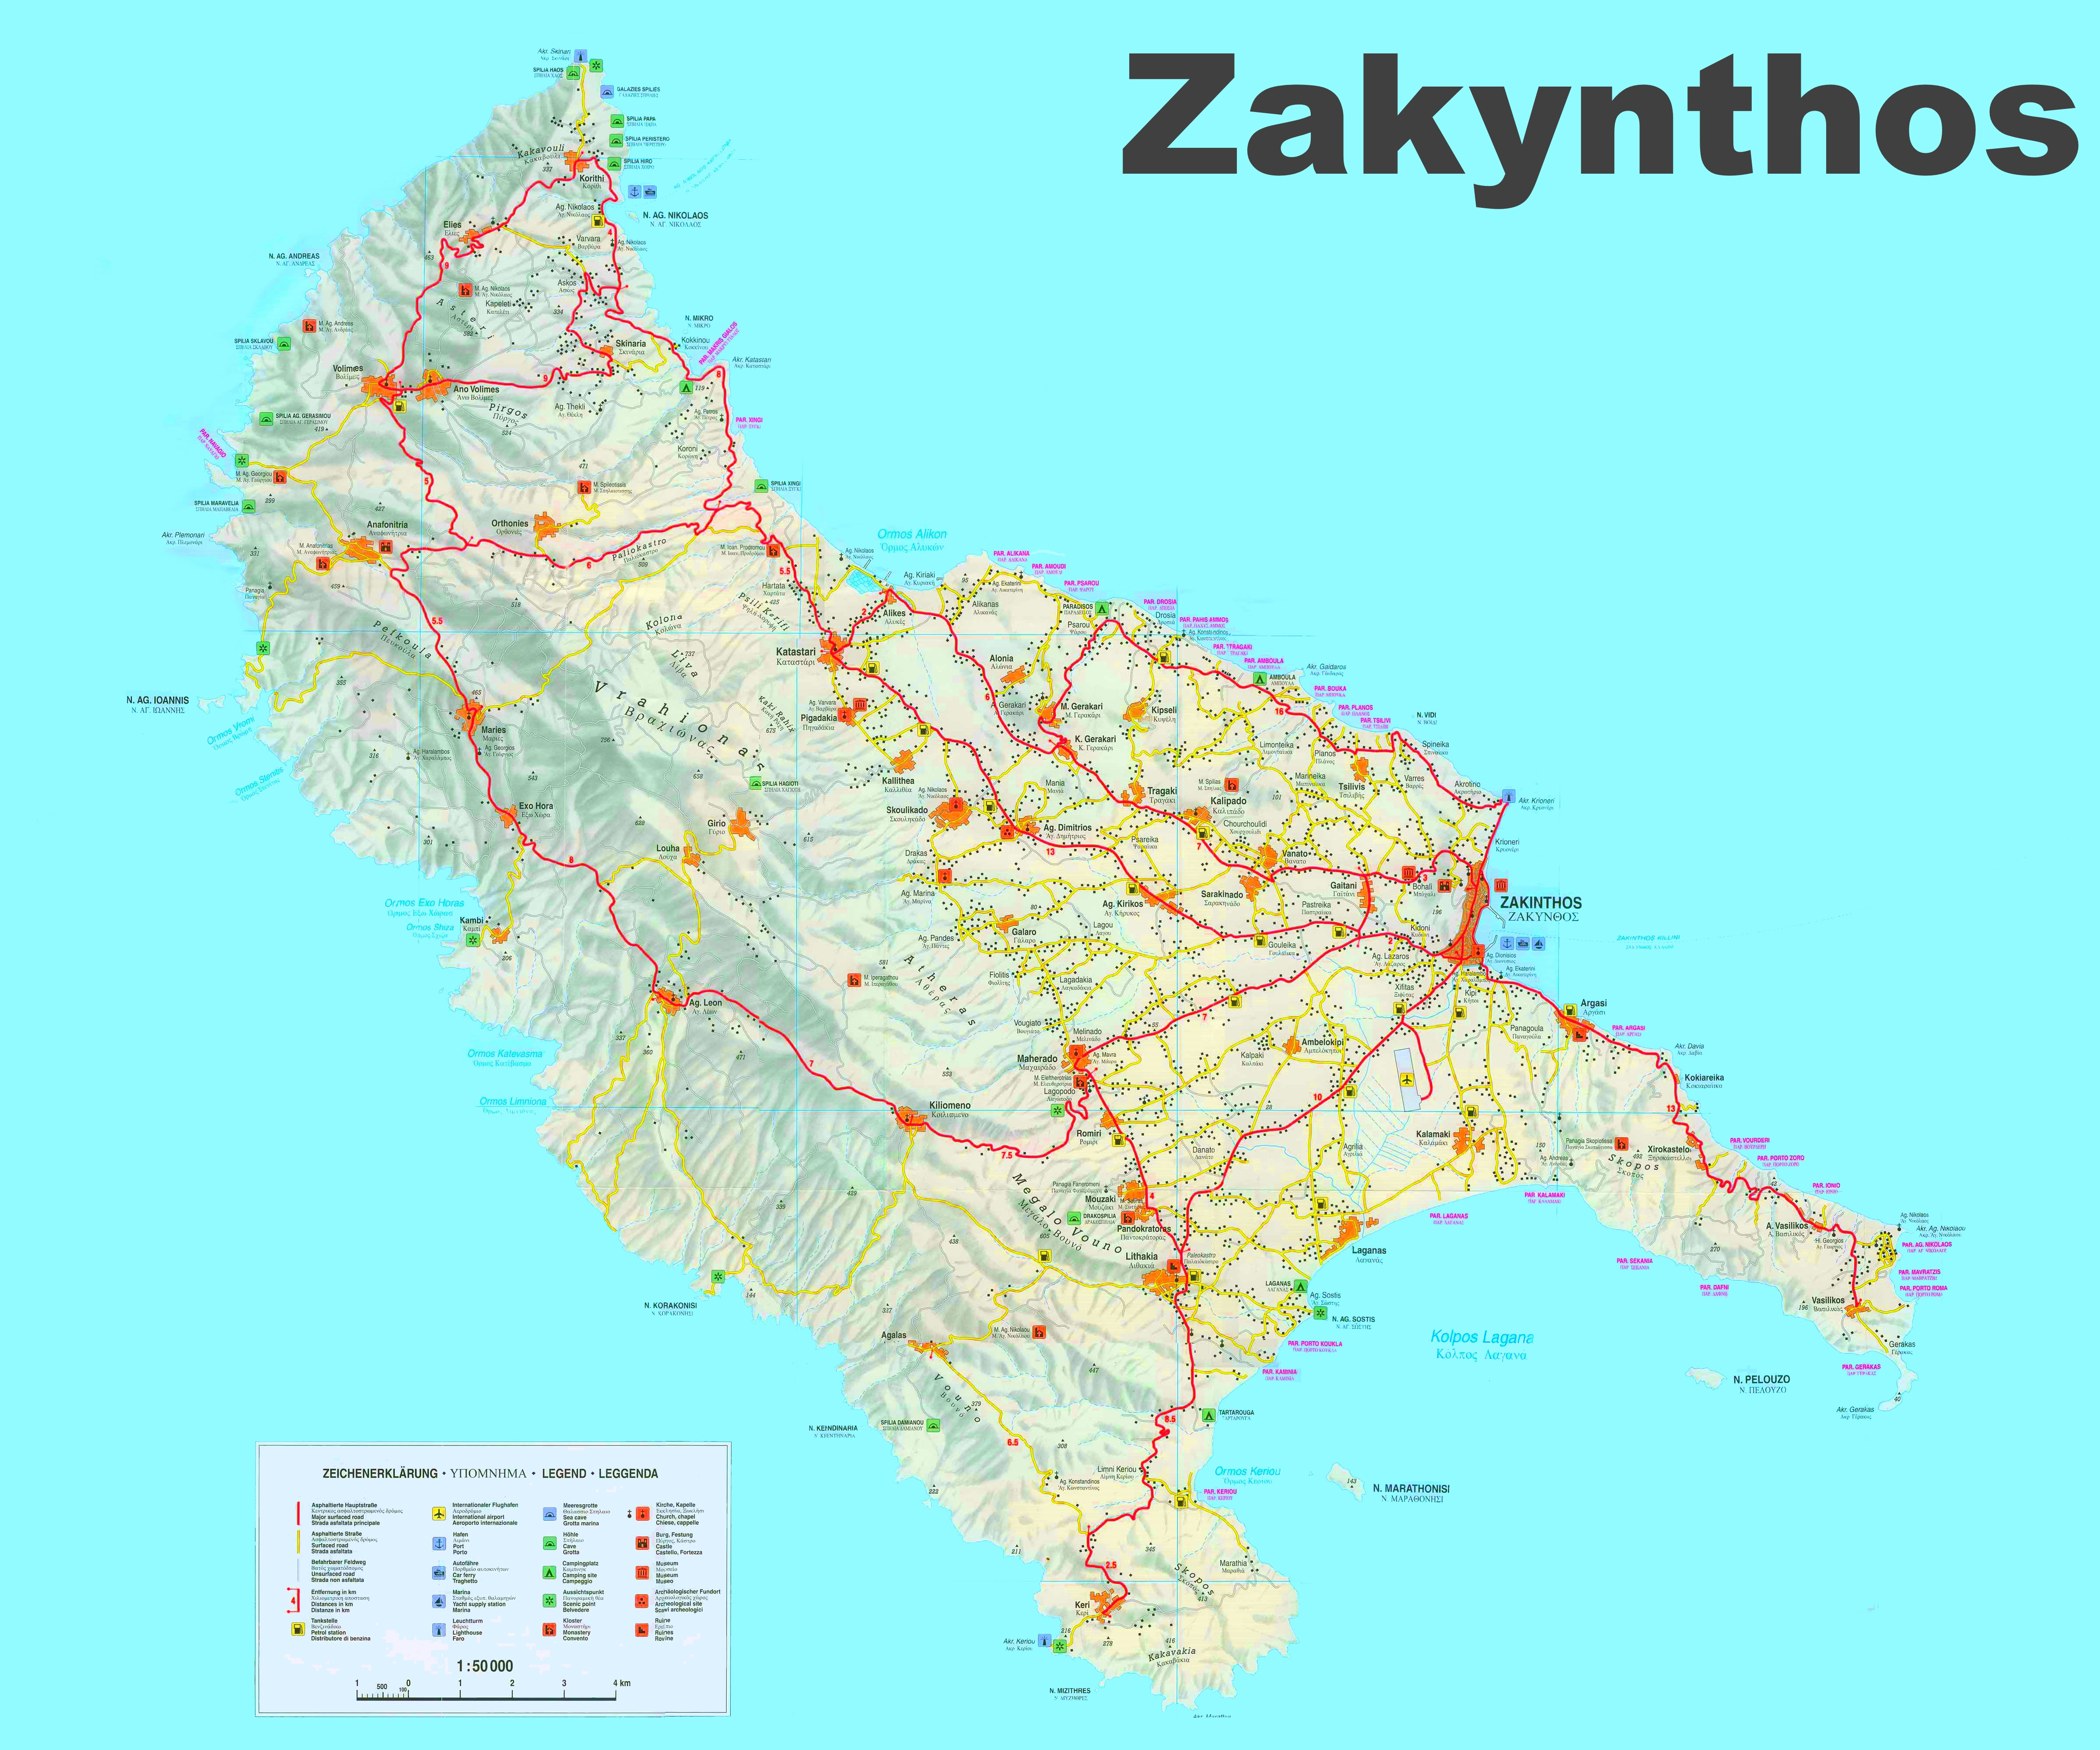 Greece Tourist Attractions Map - Attractions Near Me on